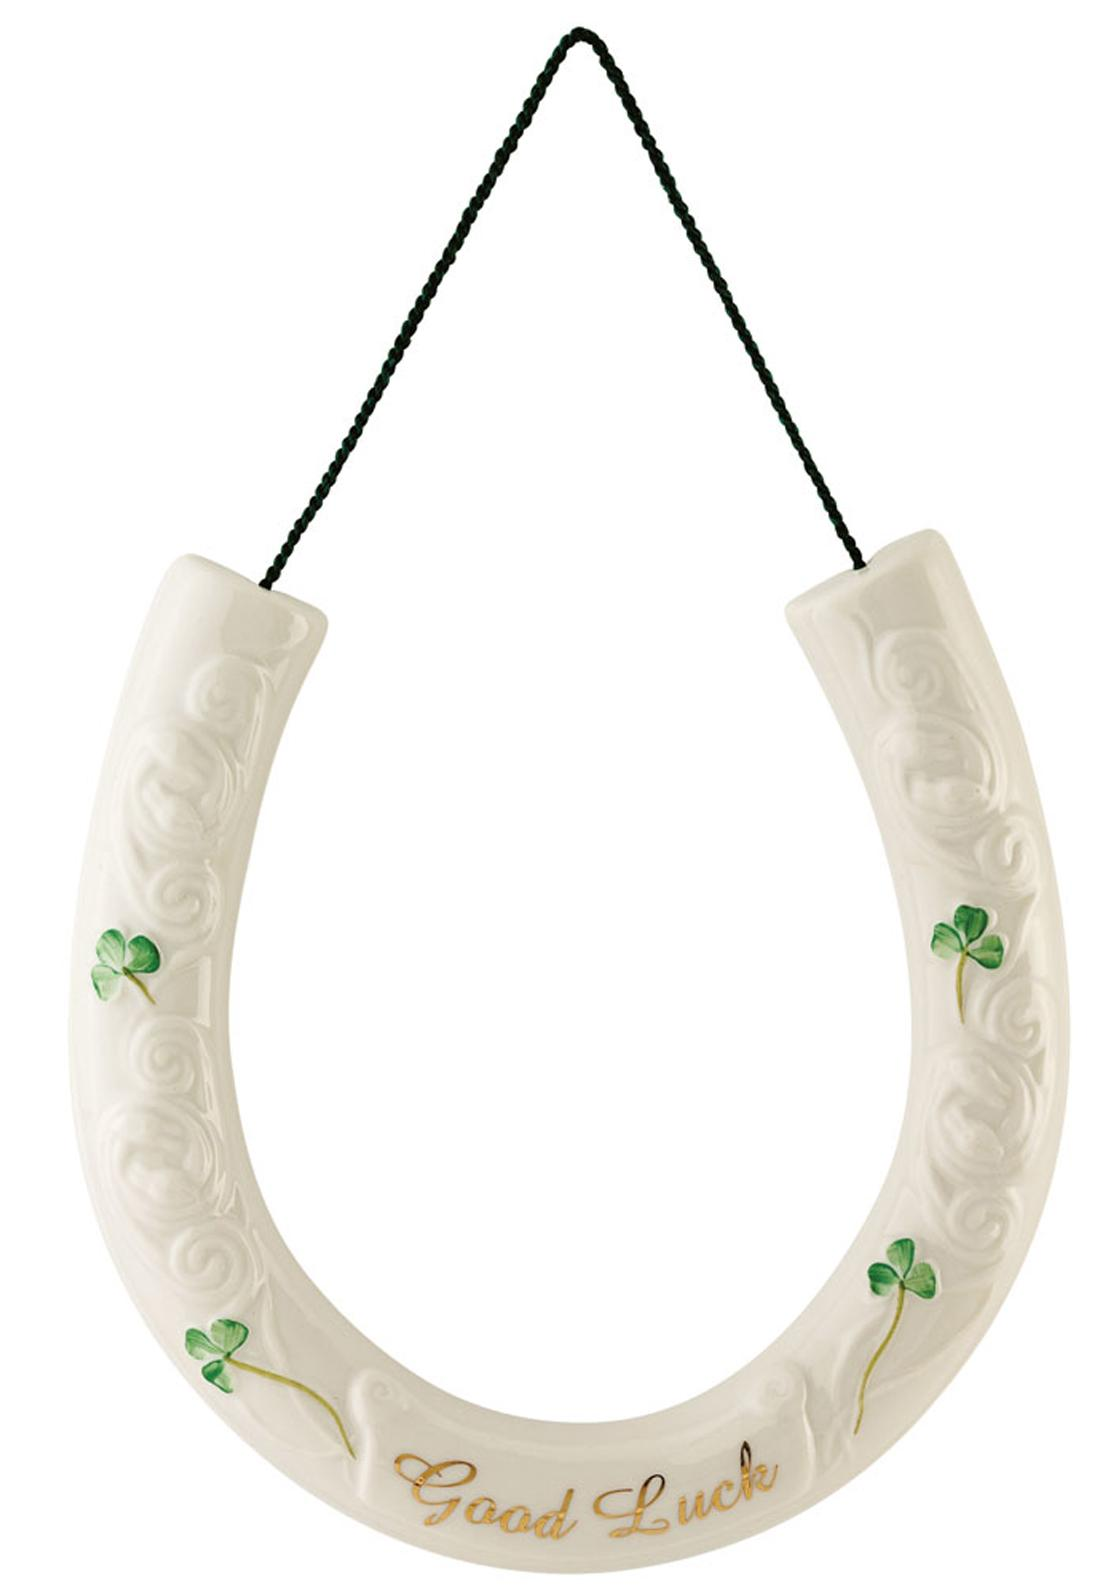 Belleek Good Luck Horseshoe